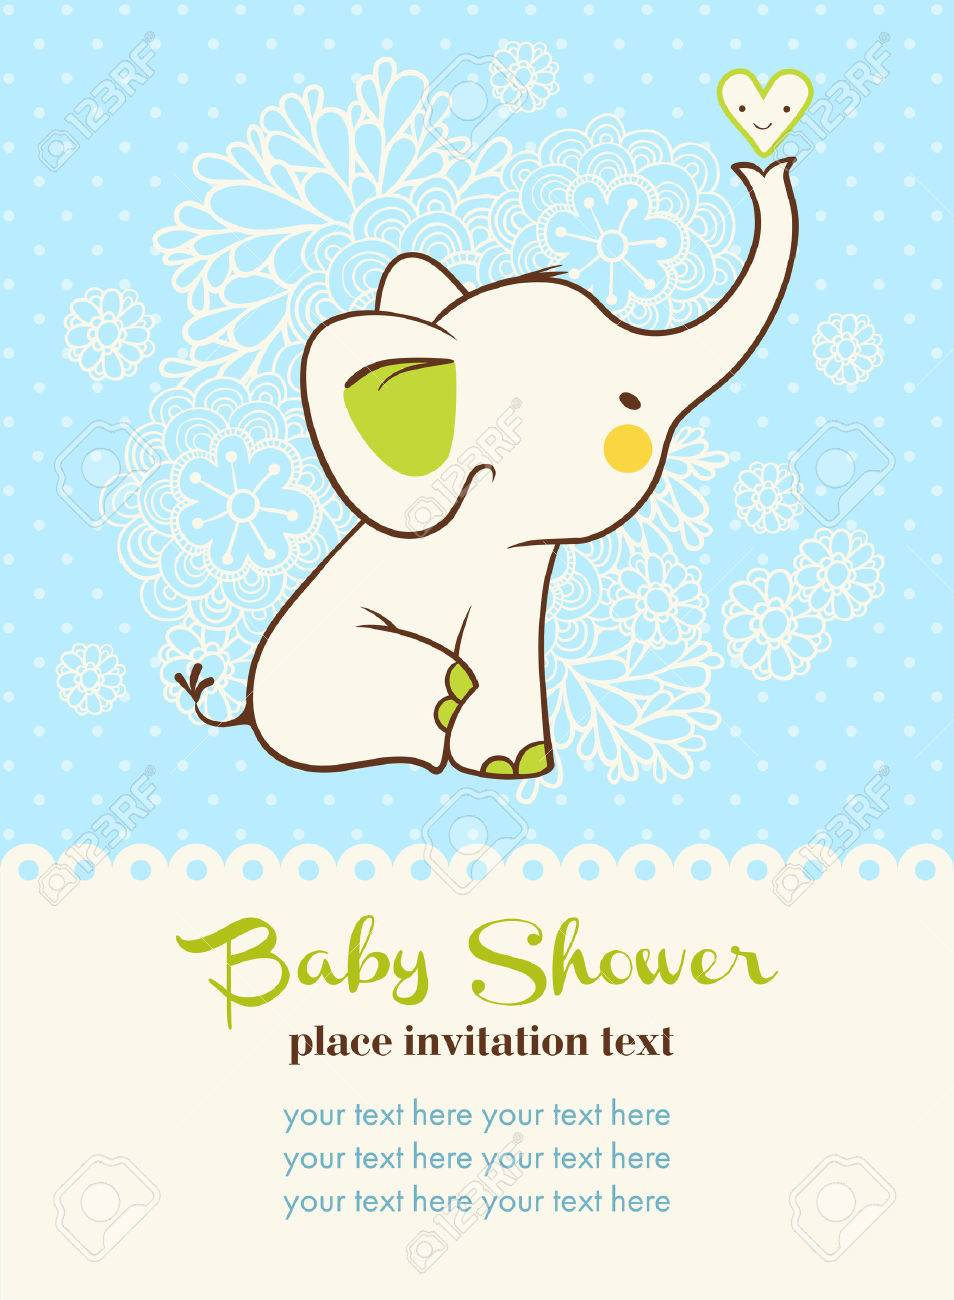 Children illustration with elephant and place for your text. Stock Vector - 48833569